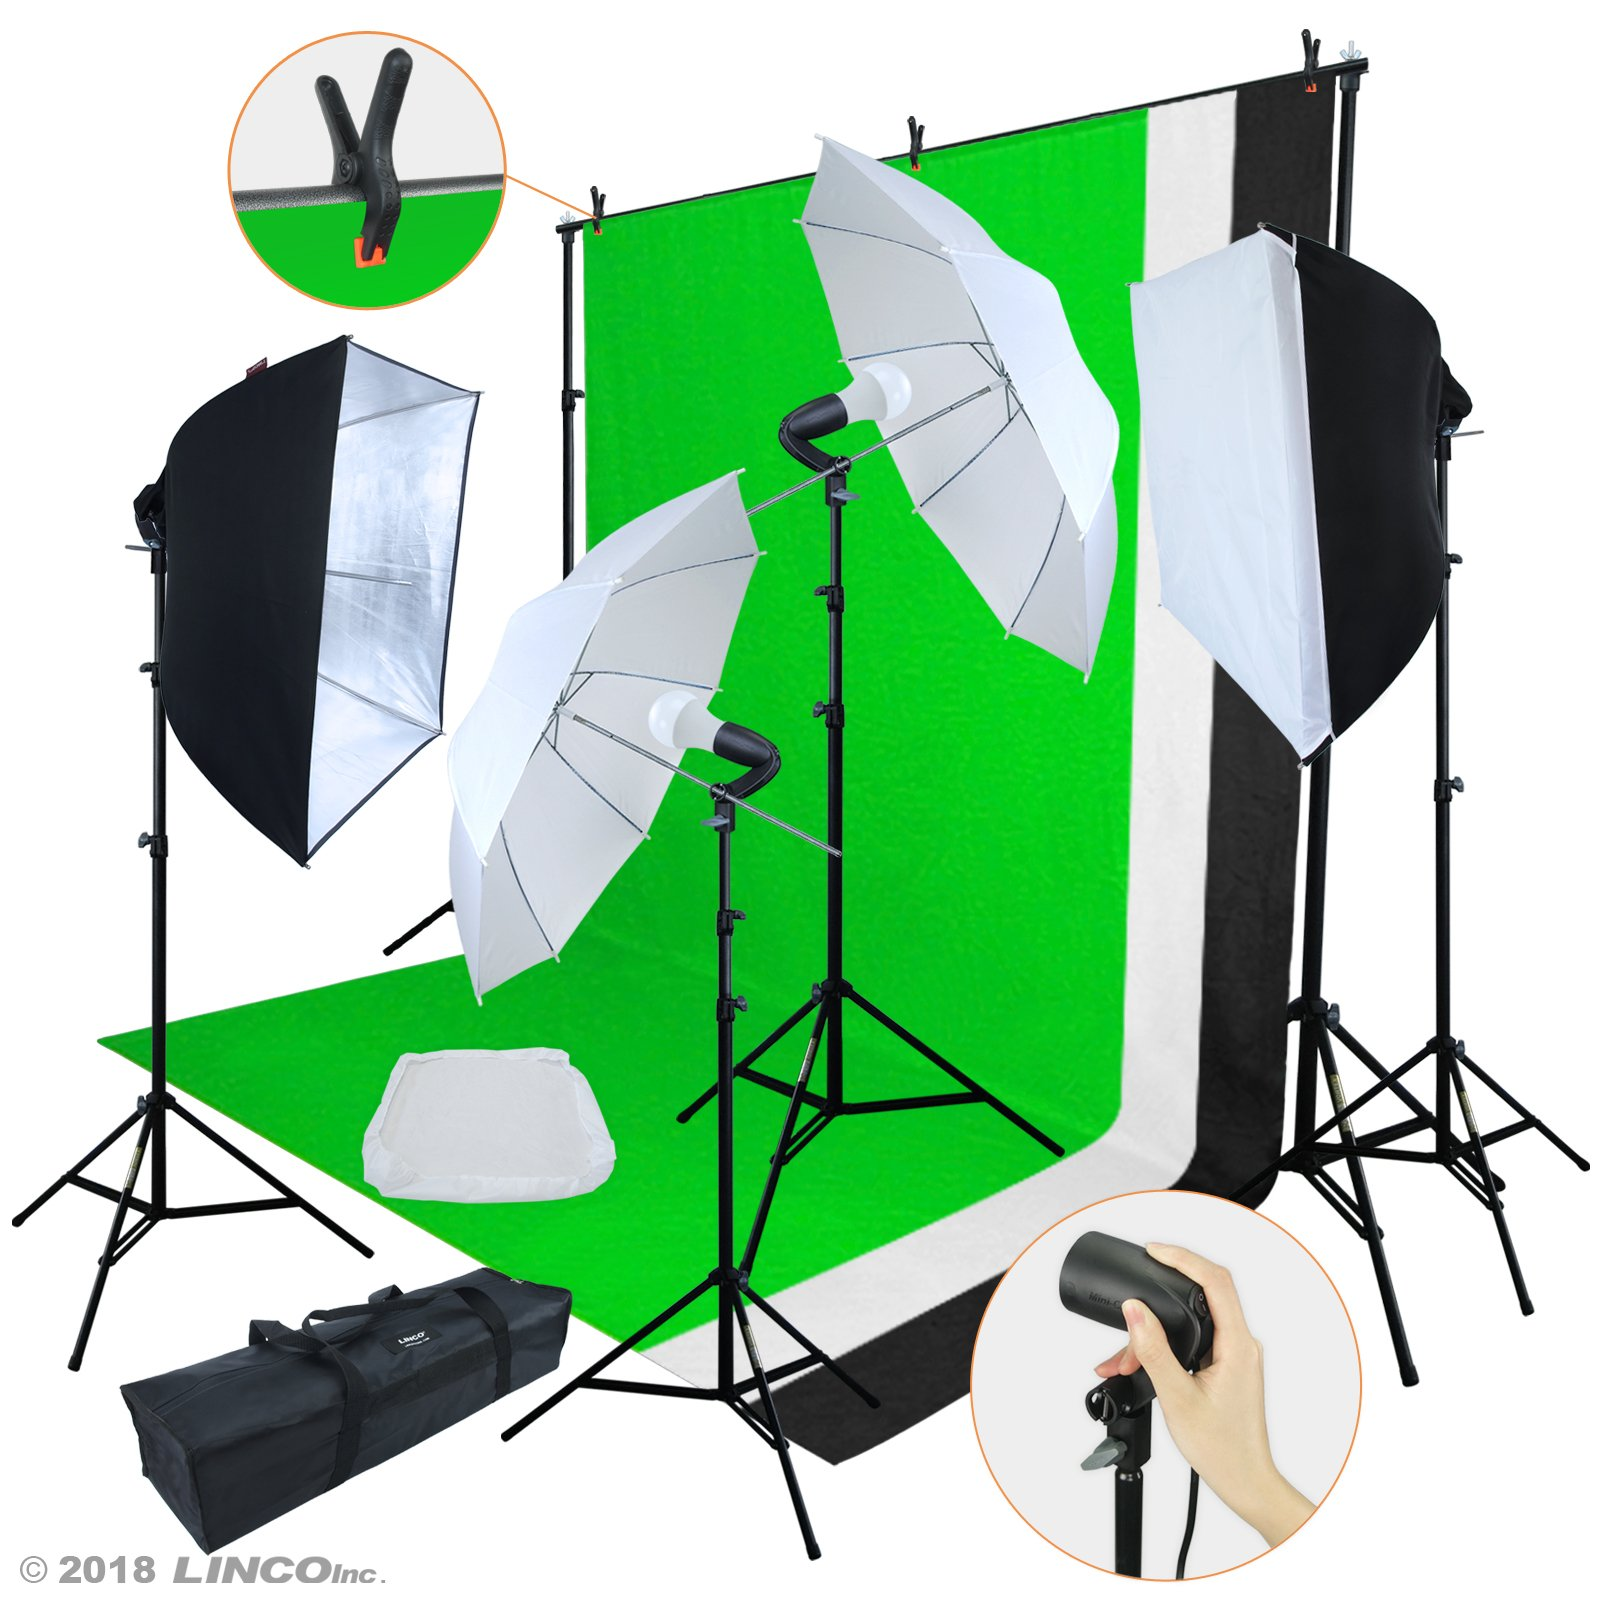 Linco Lincostore LED 3200 Lumens Photo Video Studio Light Kit AM243 - Including 3 Color Backdrops (Black/White/Green) Background Screen by Linco